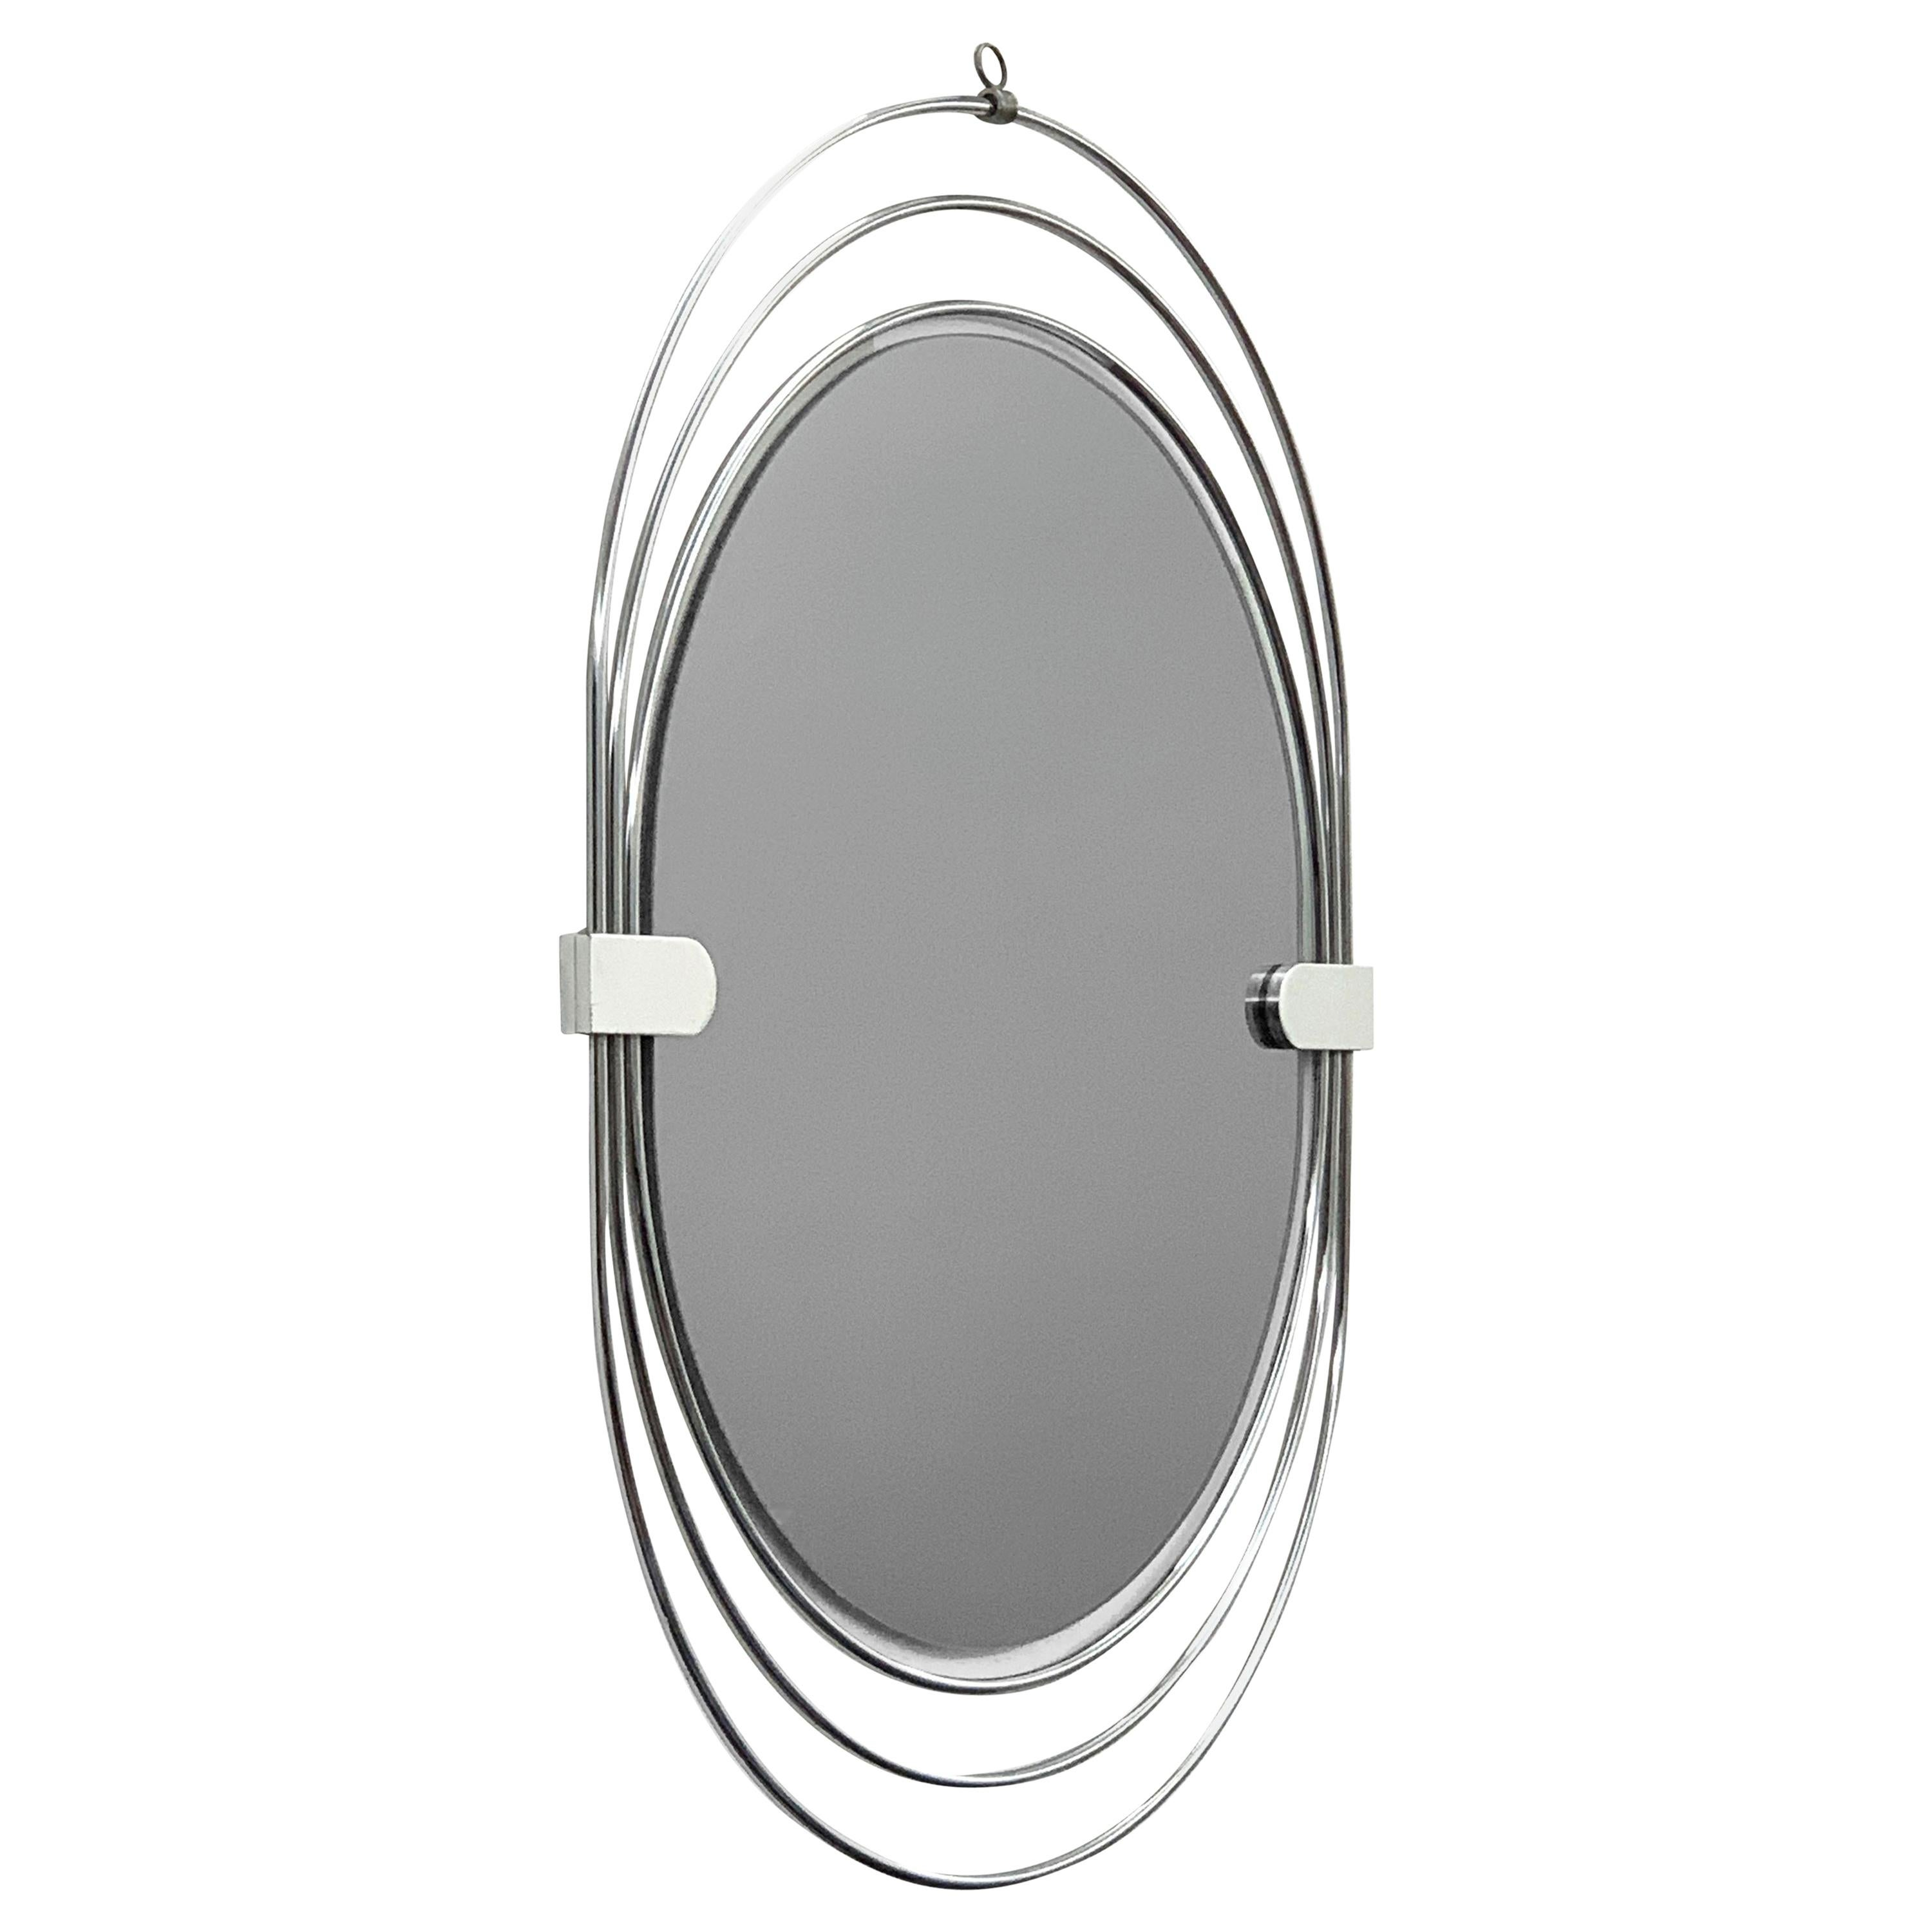 Oval Wall Mirror in Stainless Steel, Triple Frame, Smoked Mirror, Italy, 1970s